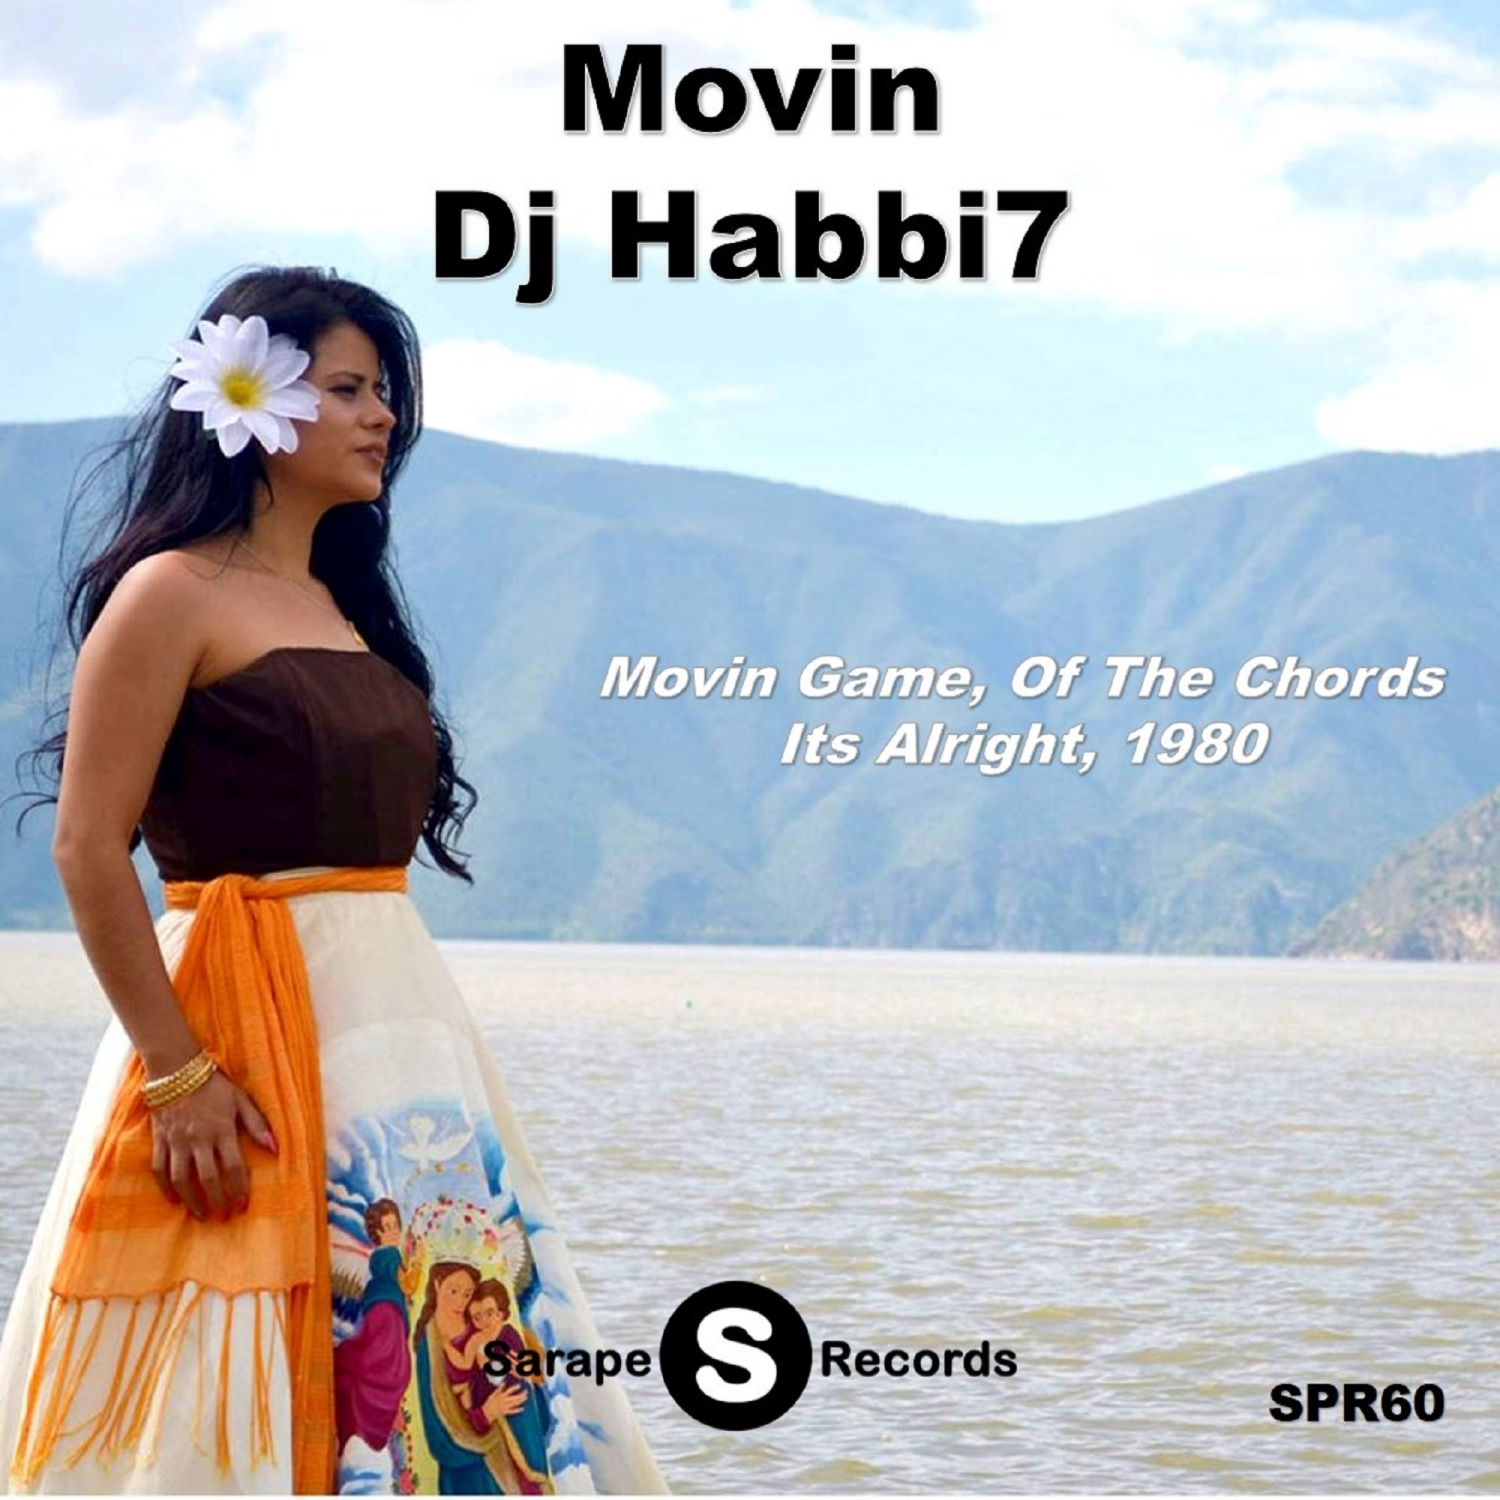 Dj Habbi7 - Movin (Original Mix)